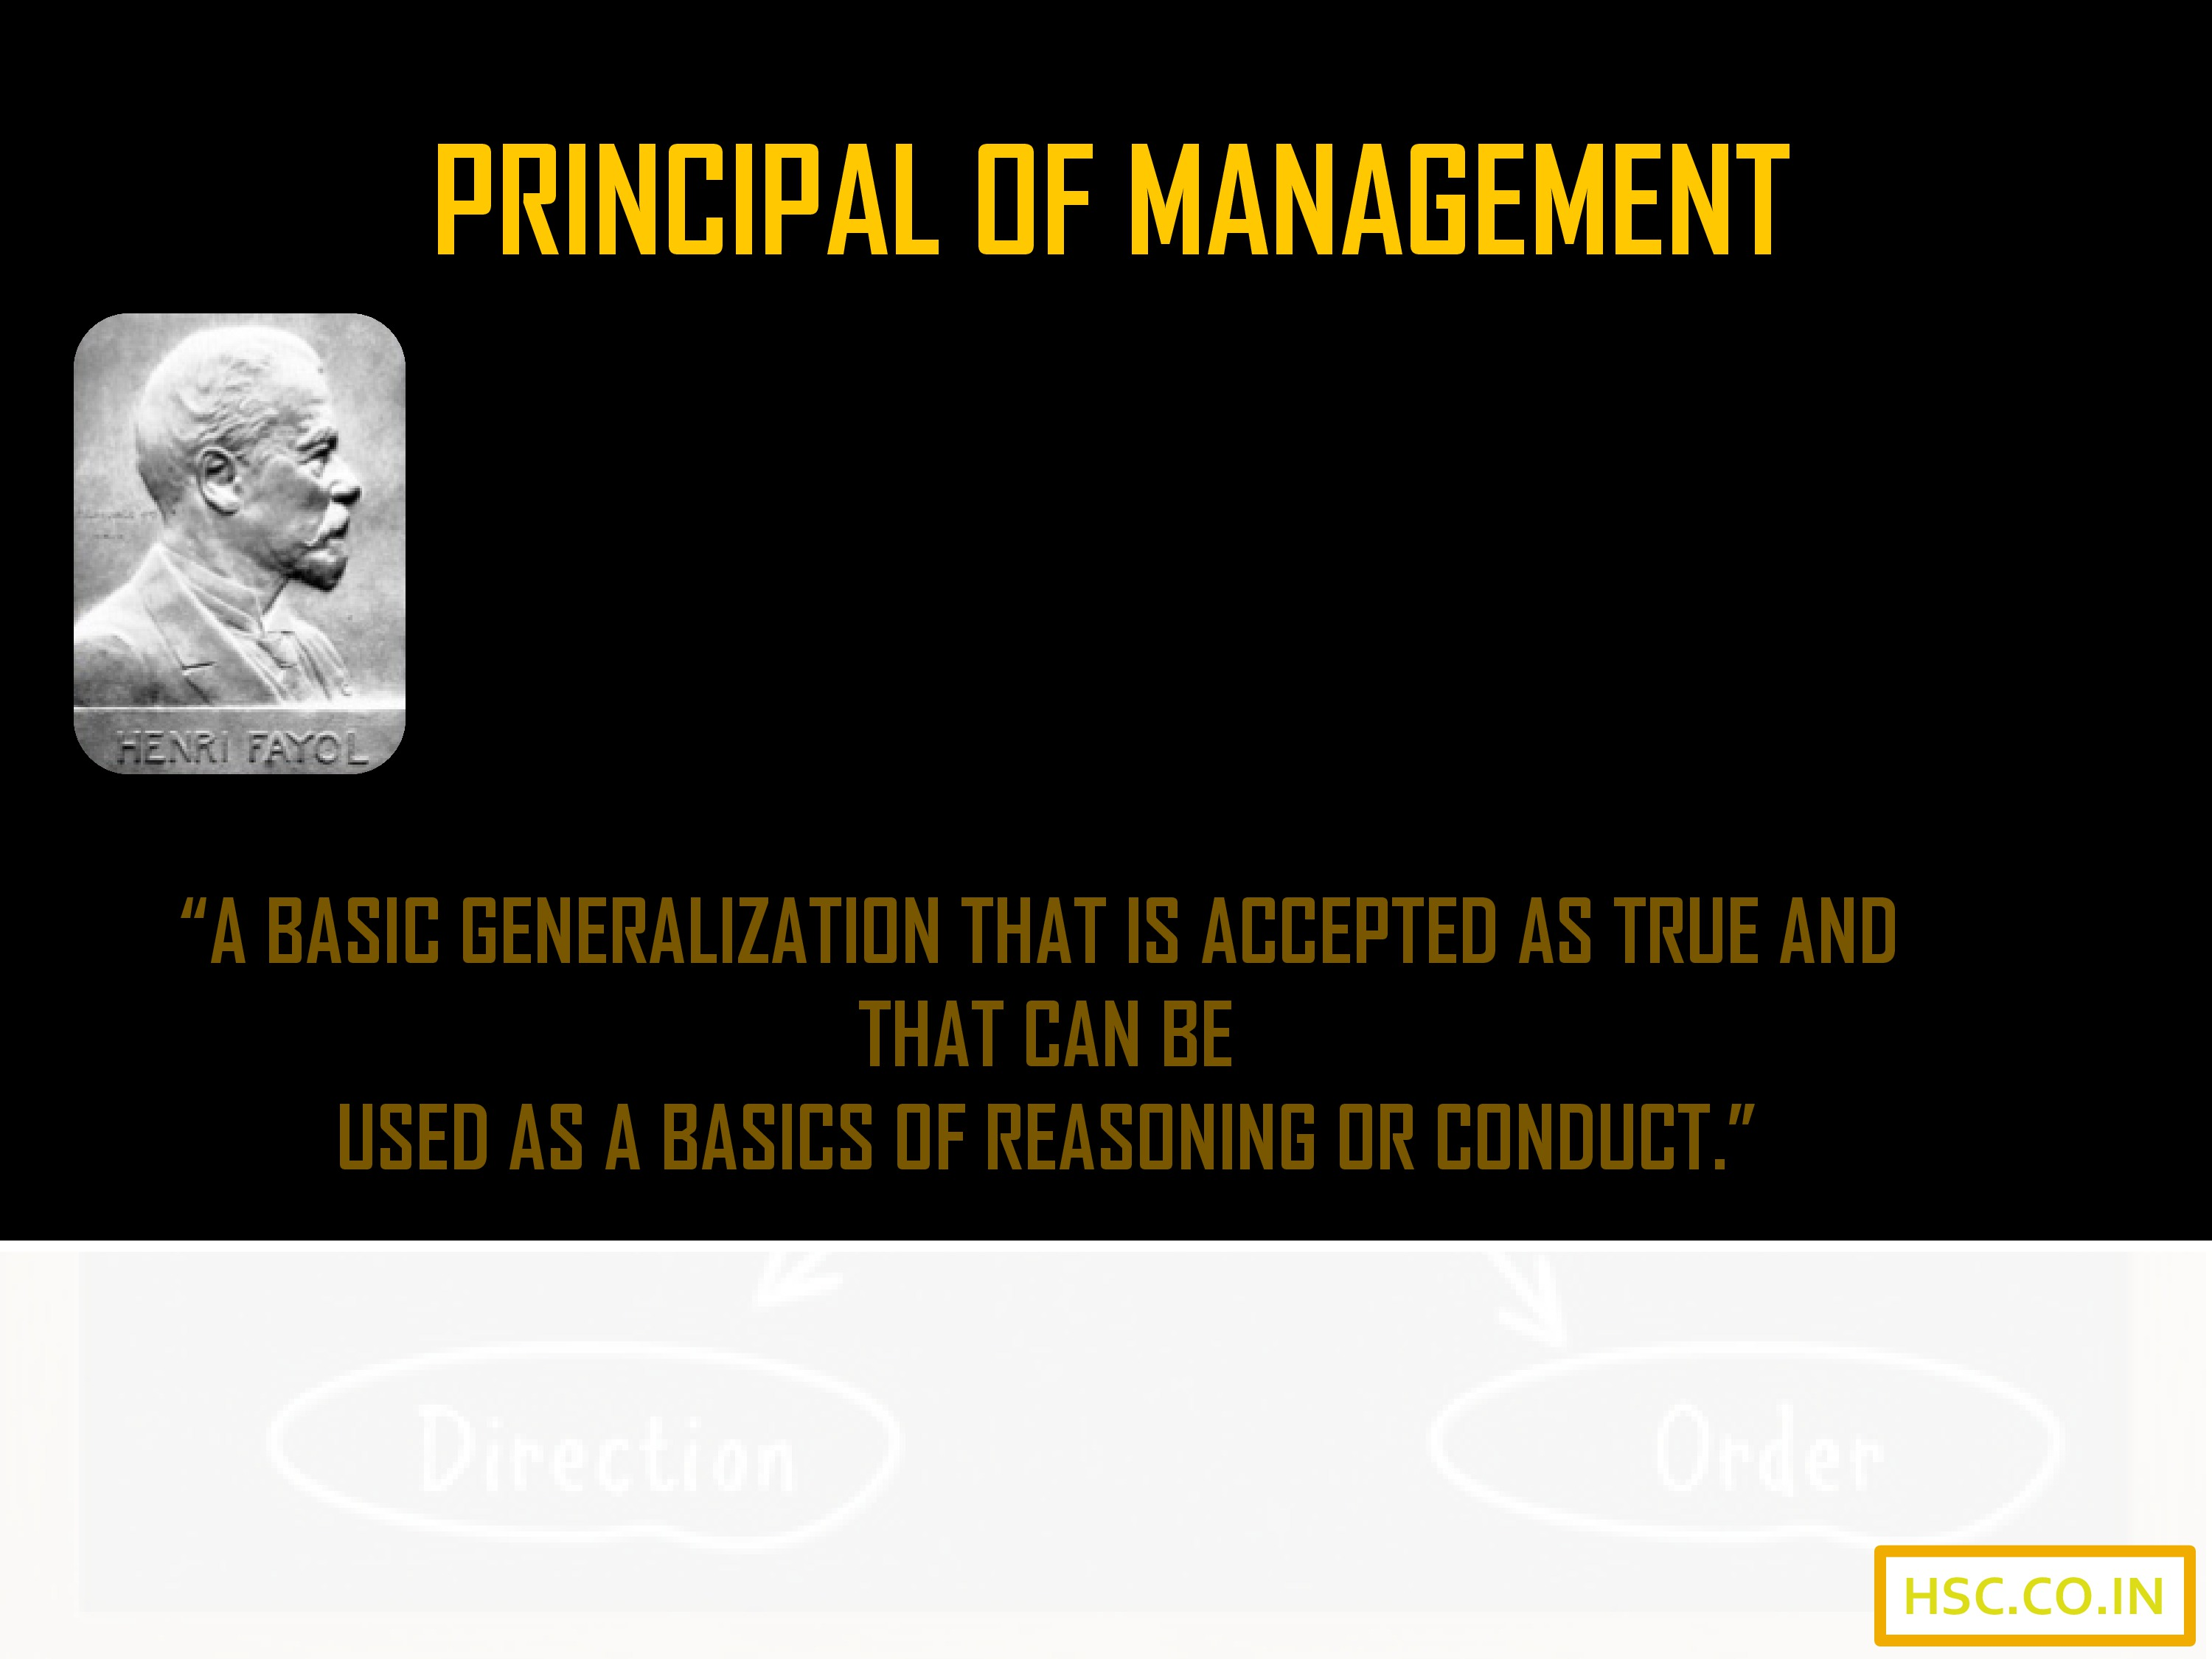 definition of principal of management